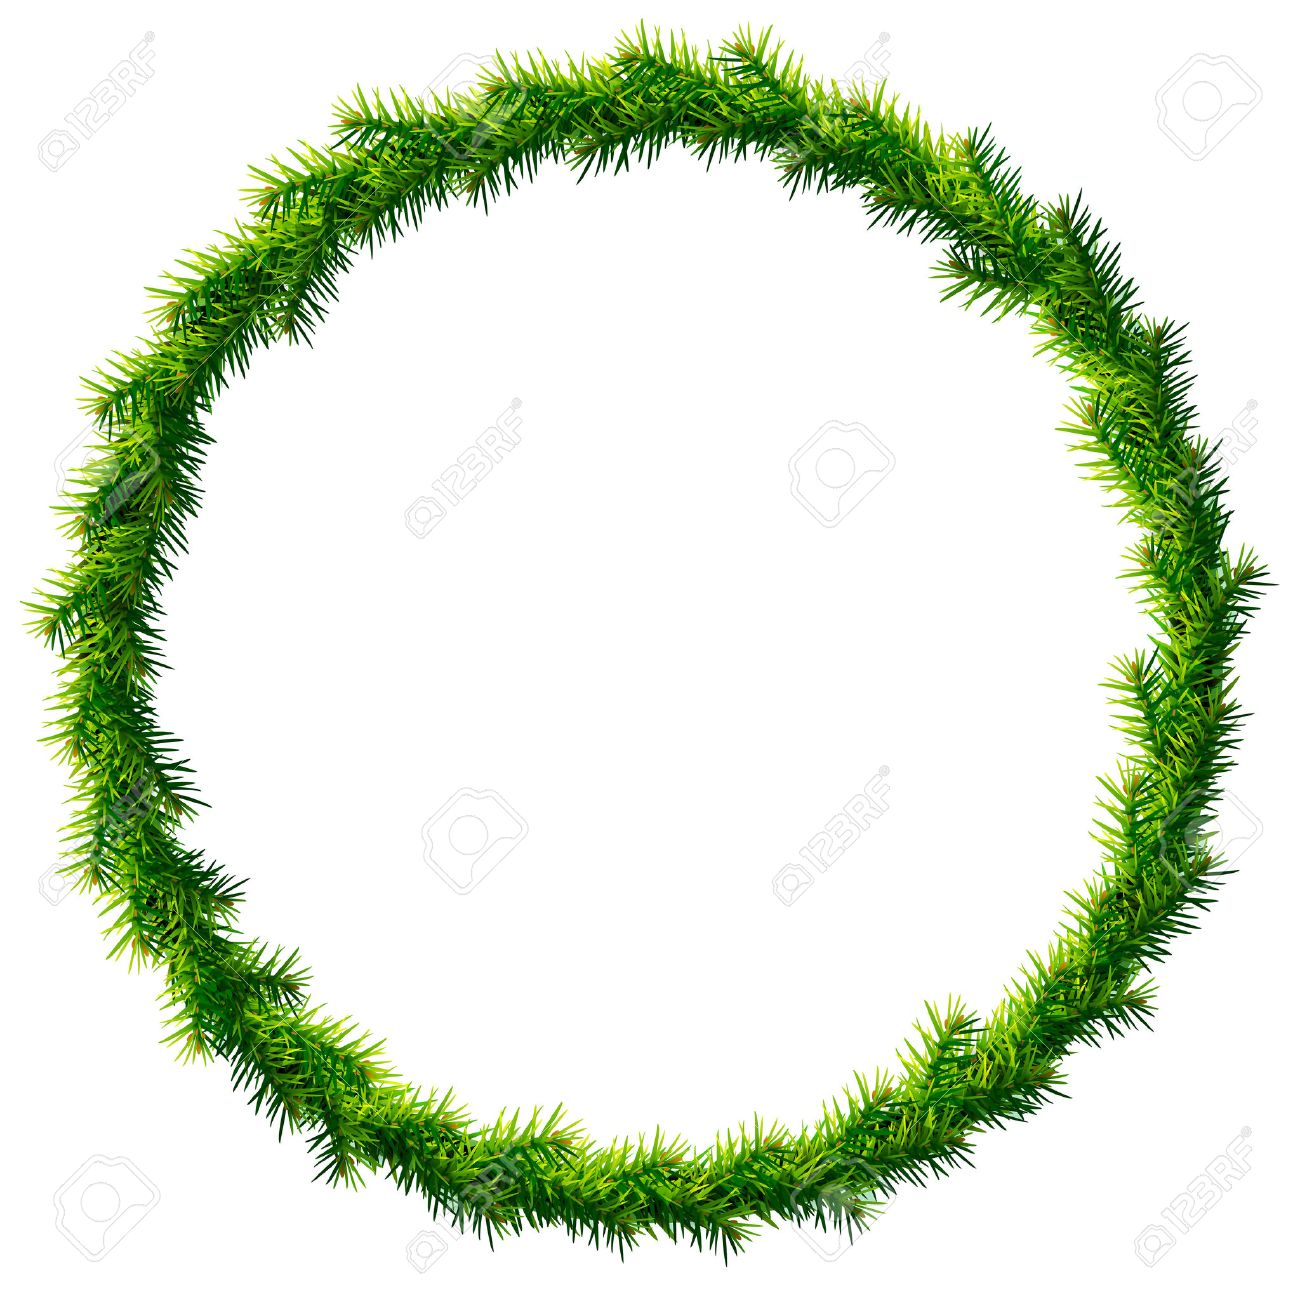 Pine Branches For Decoration Thin Christmas Wreath Without Decoration Round Frame Of Pine